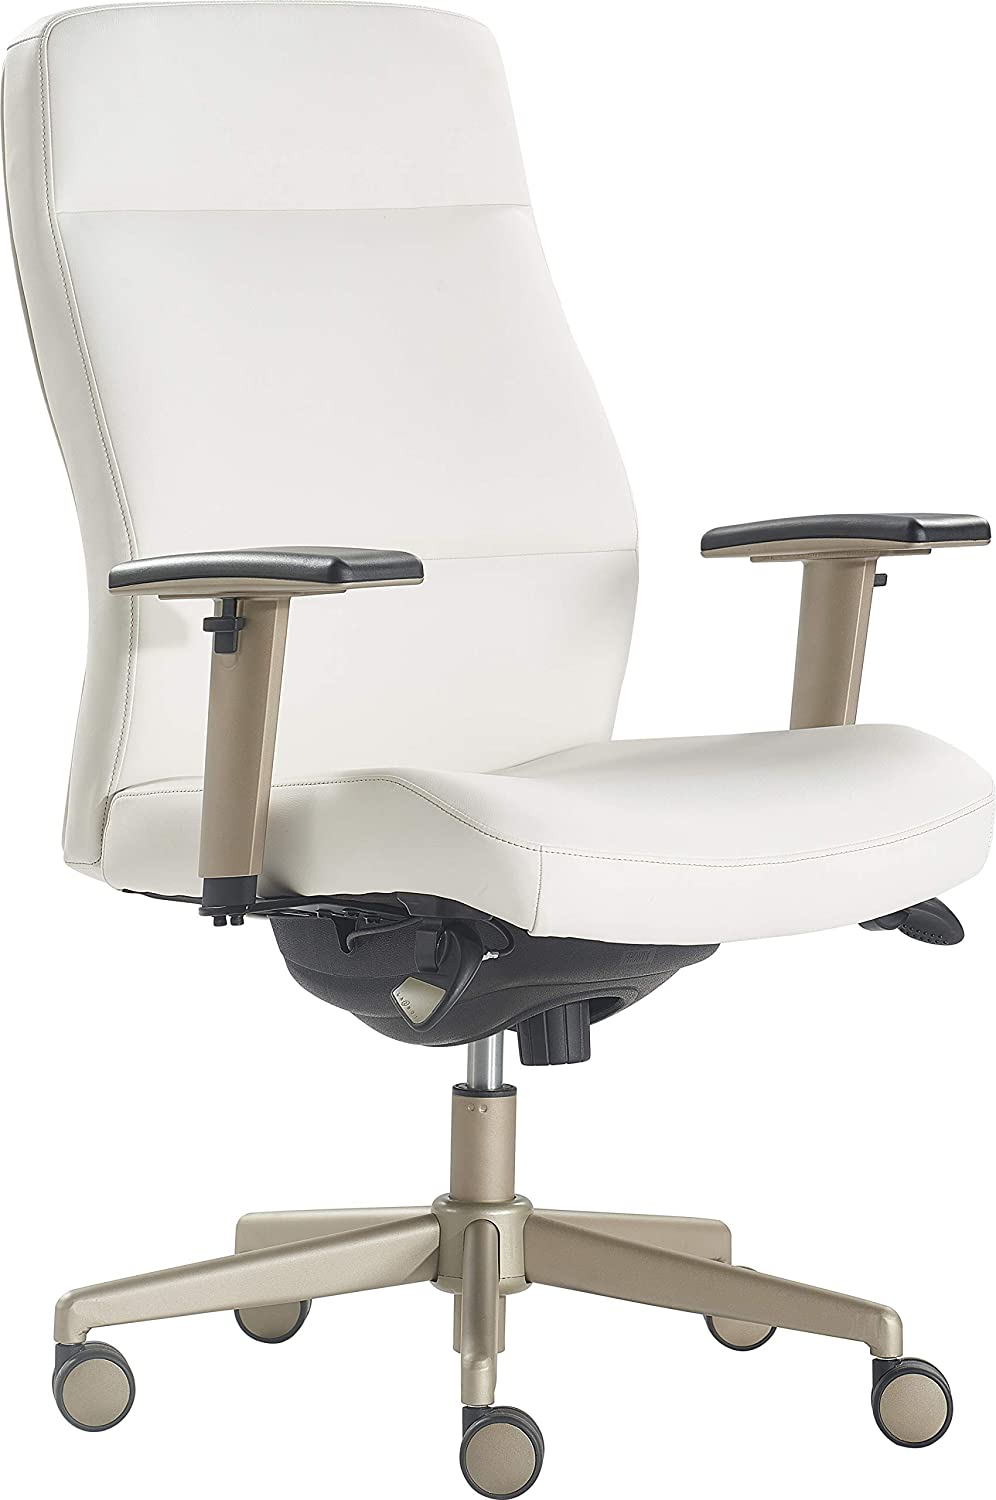 LaZBoy Baylor Executive Office Chair, White